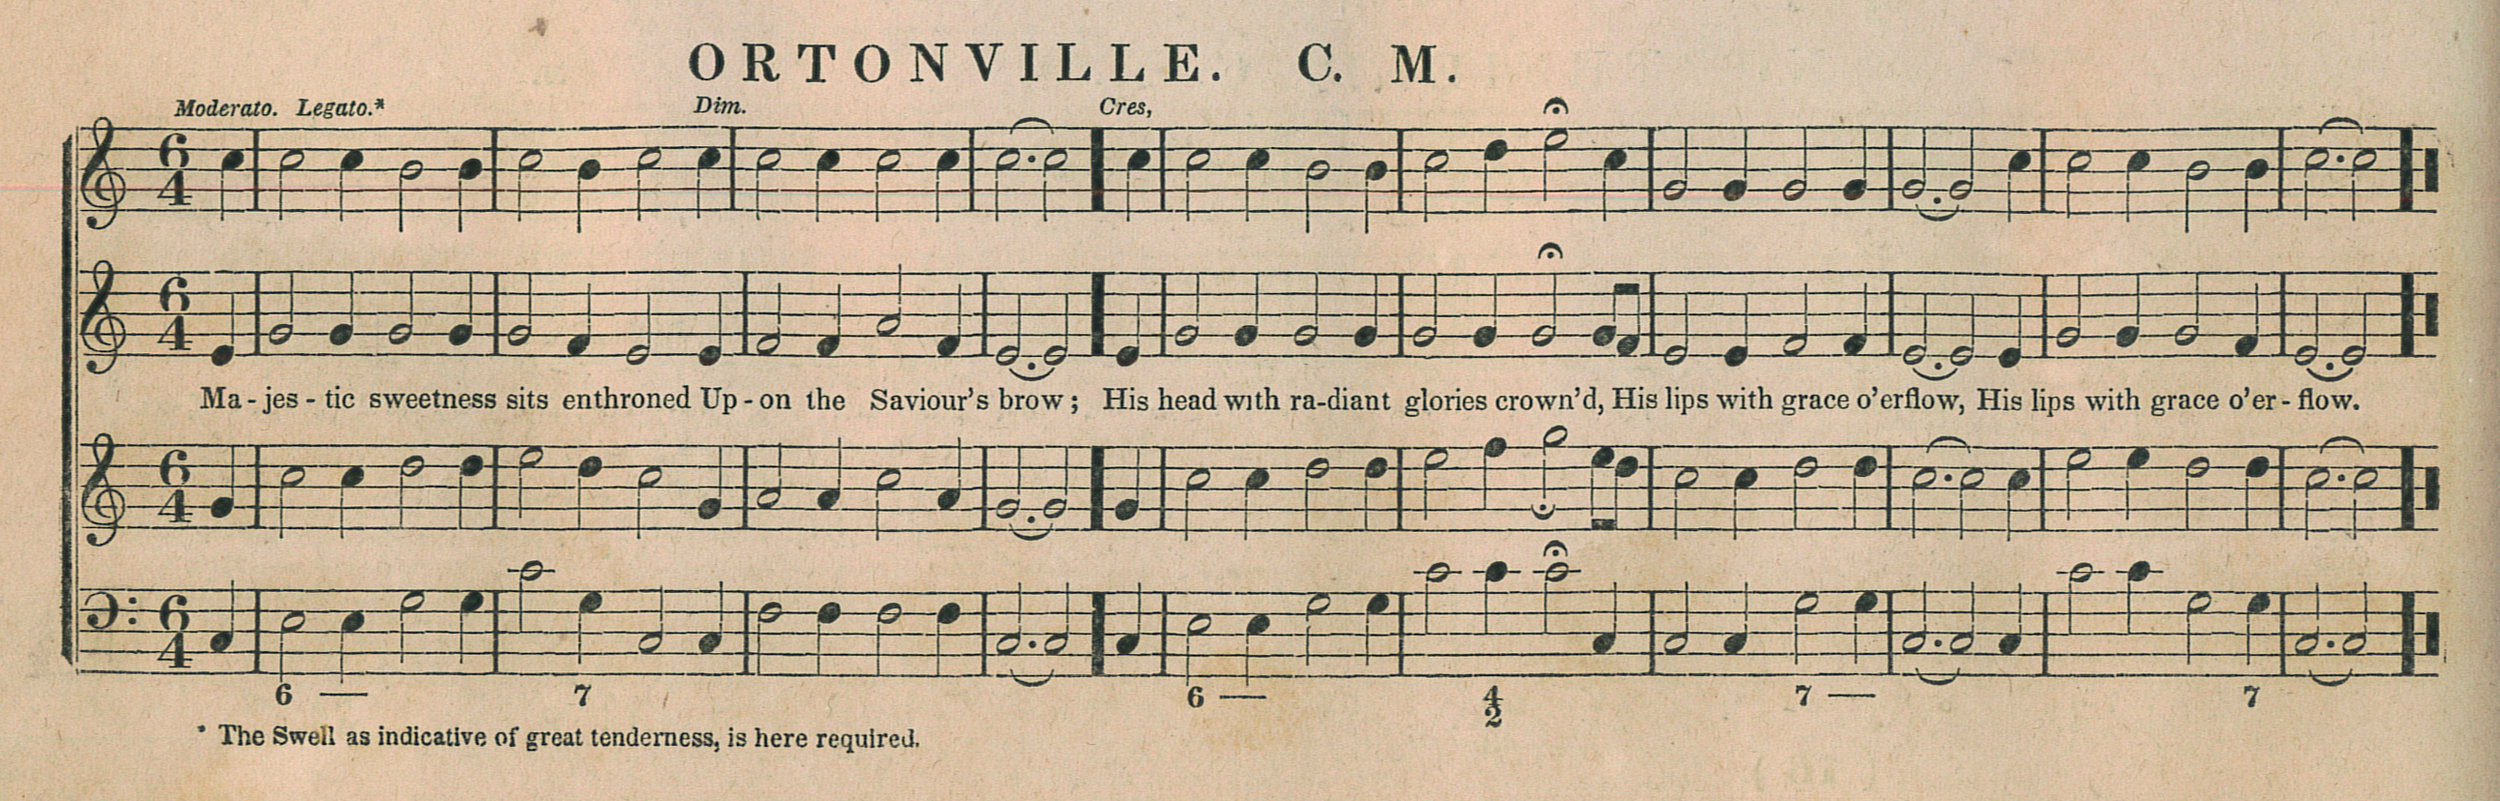 Fig. 3.   The Manhattan Collection  (NY: Ezra Collier & Co., 1837). Melody in the tenor part.